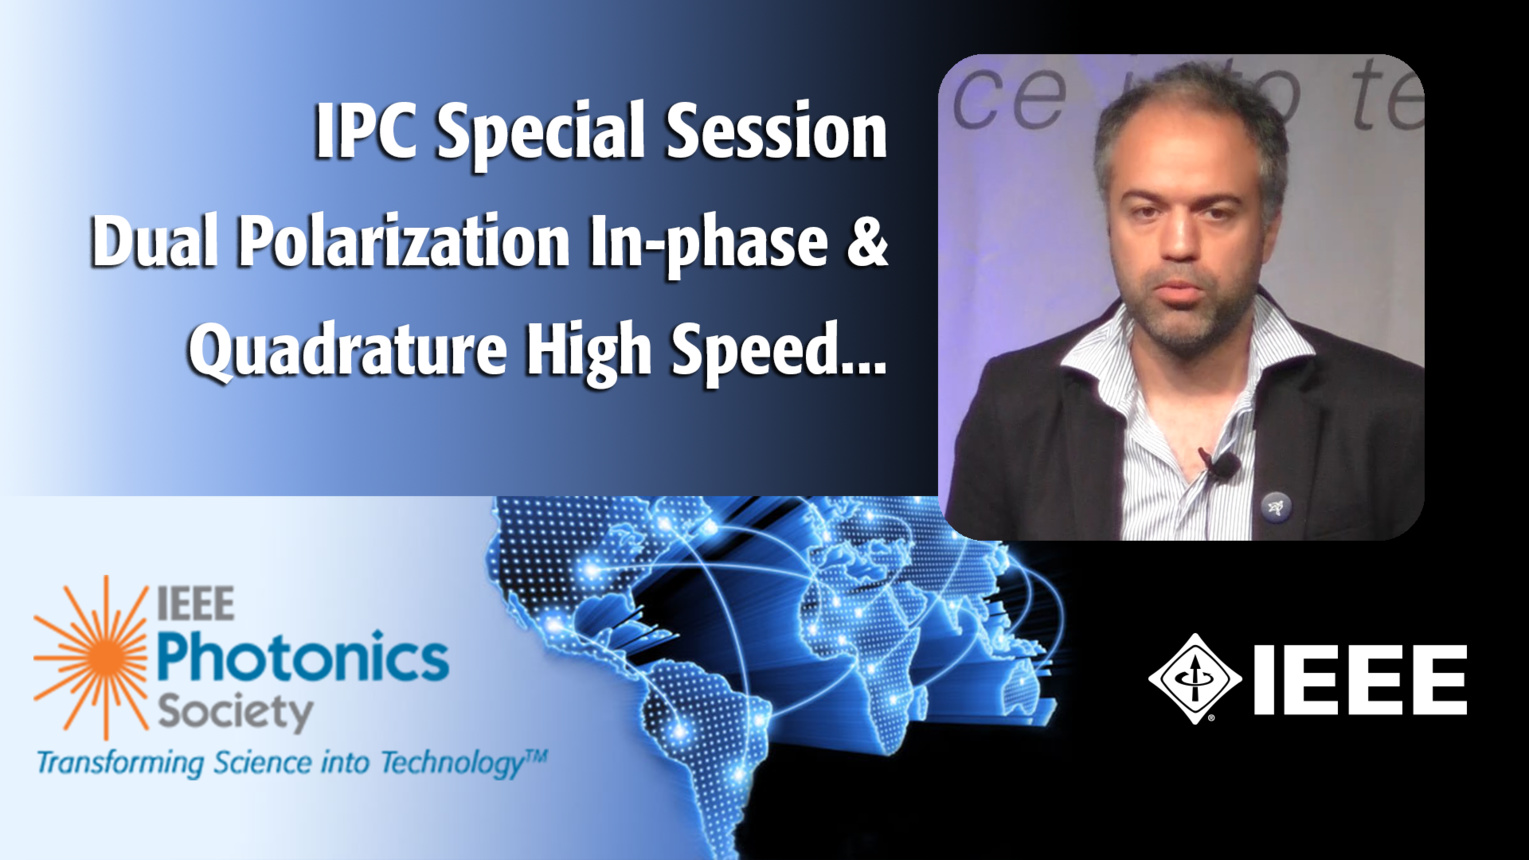 An IEEE IPC Special Session with Rafael Rios-Mueller of Nokia Bell Labs